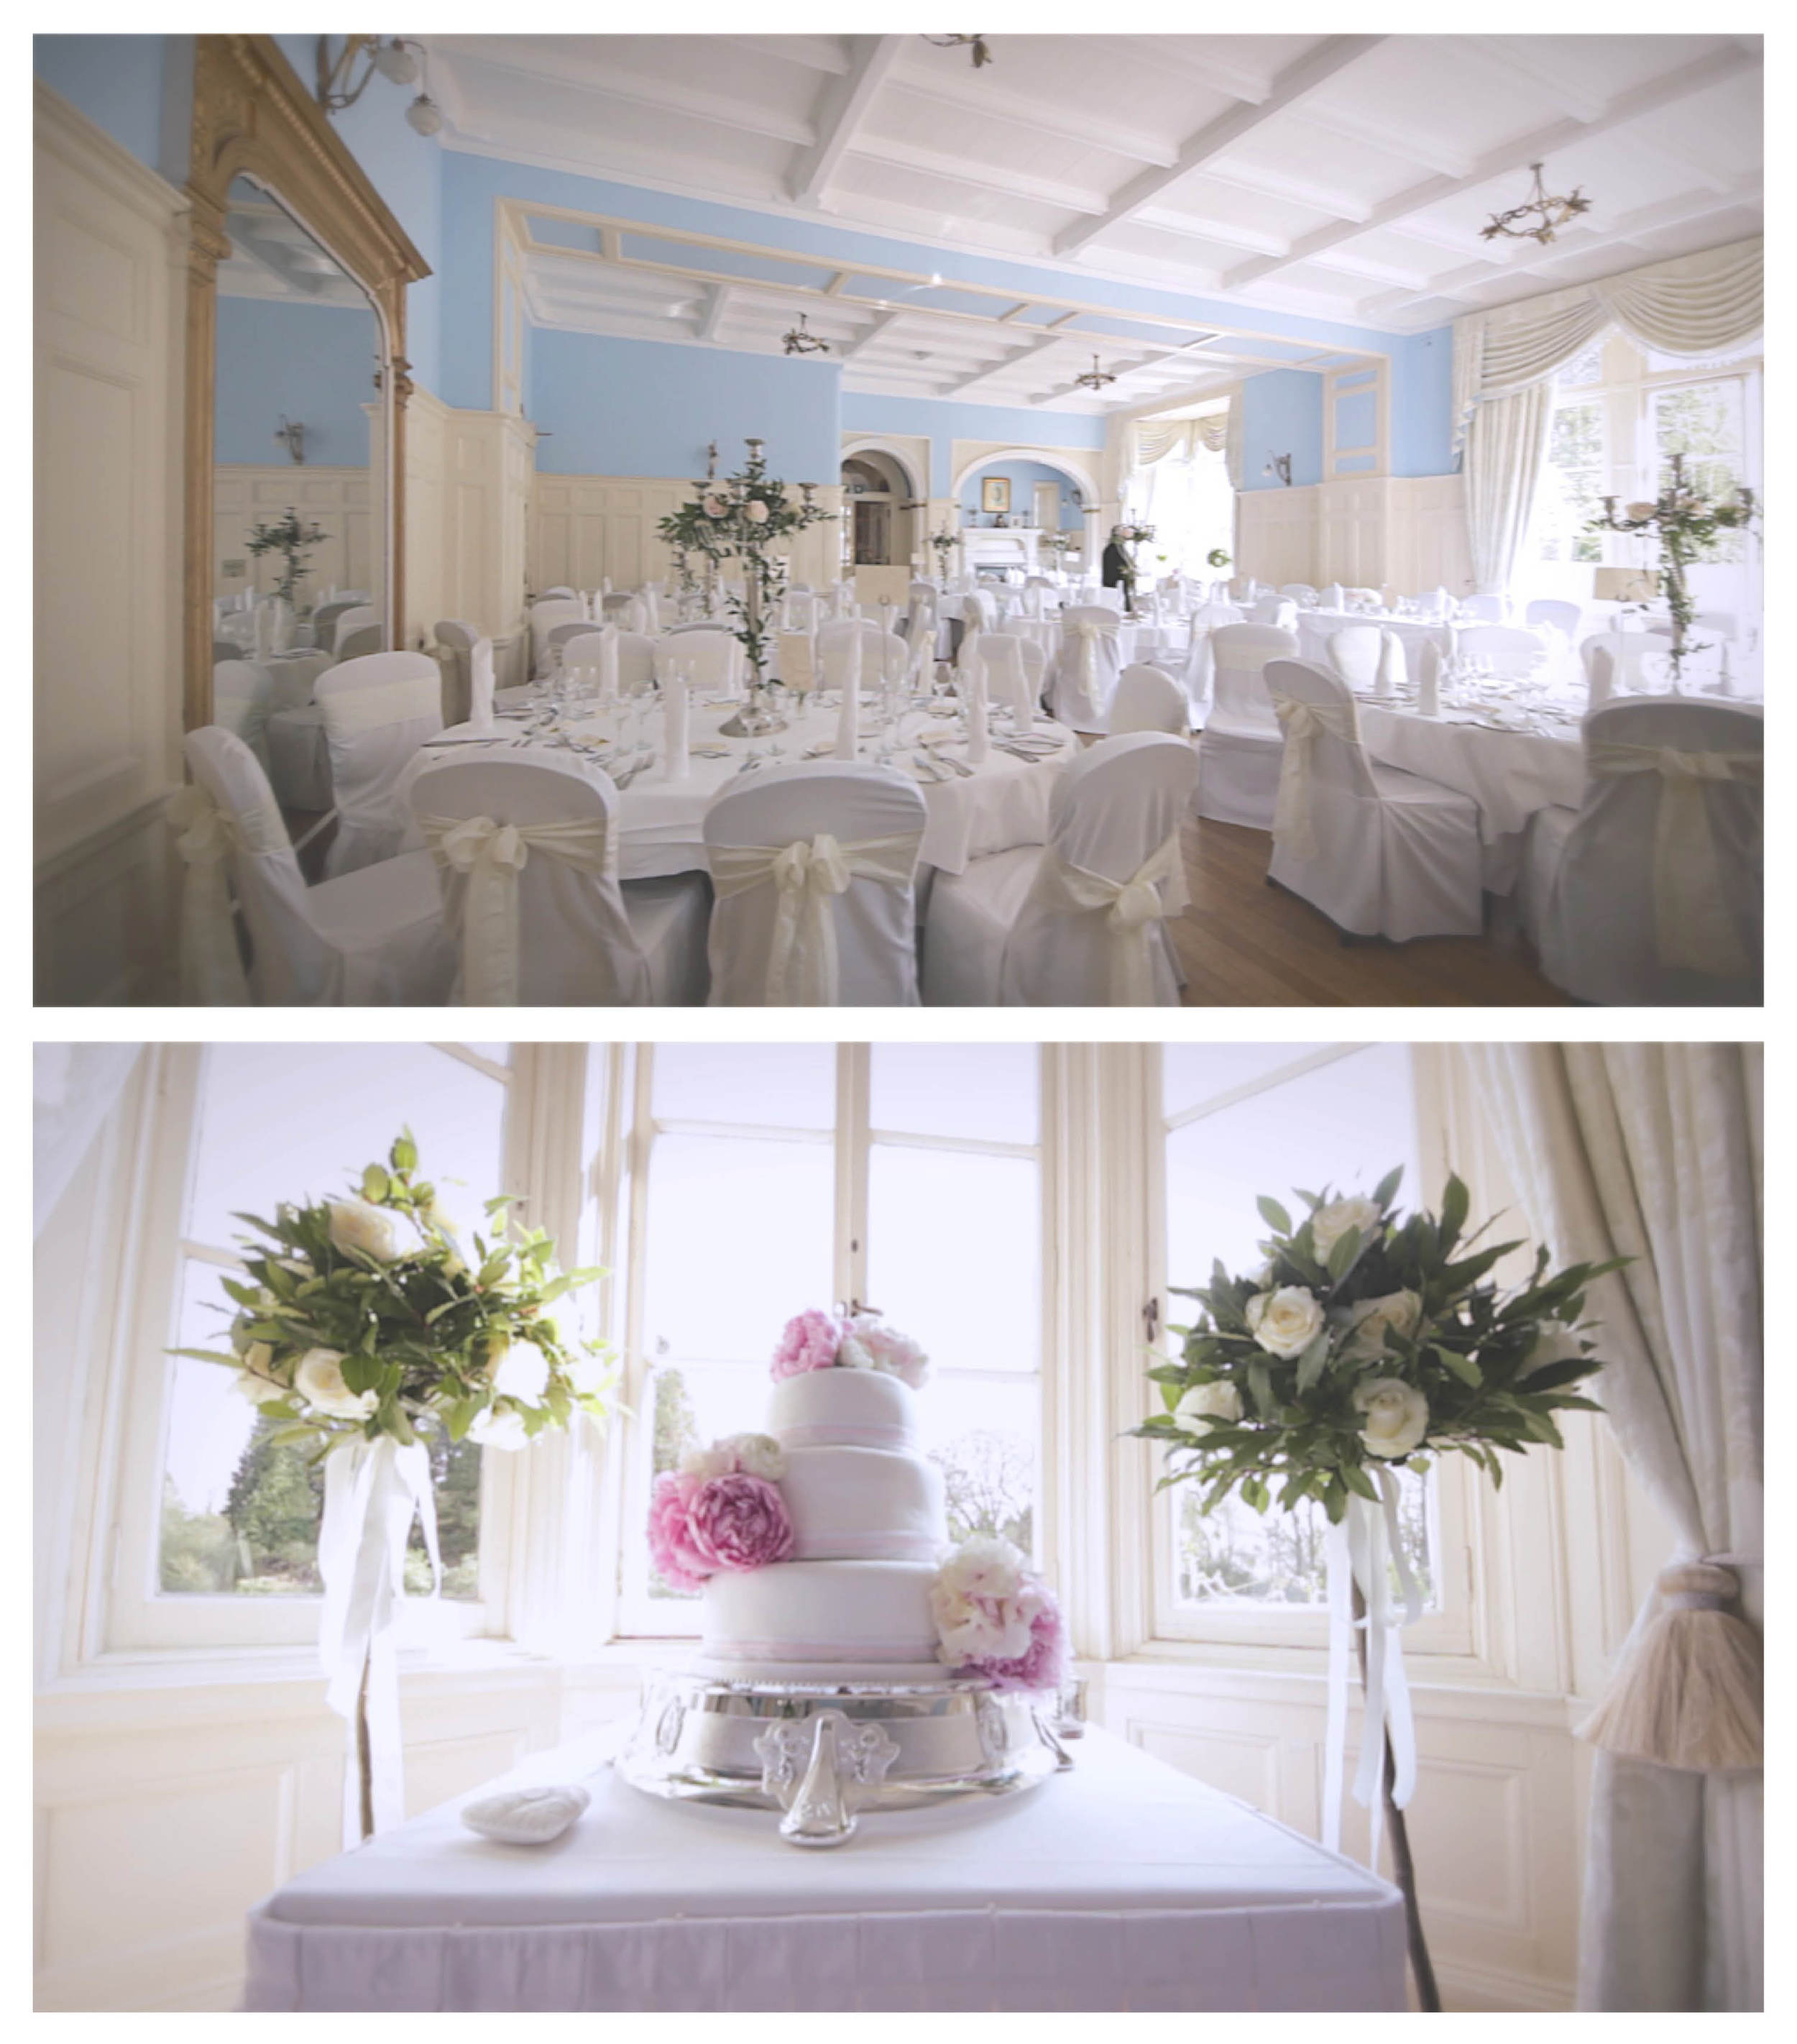 Helen paul solsgirth house braw brides i worked hard at lots of details and wasnt sure they would be noticed but everybody did seem to really appreciate them i owe a lot to laura at cherry junglespirit Images